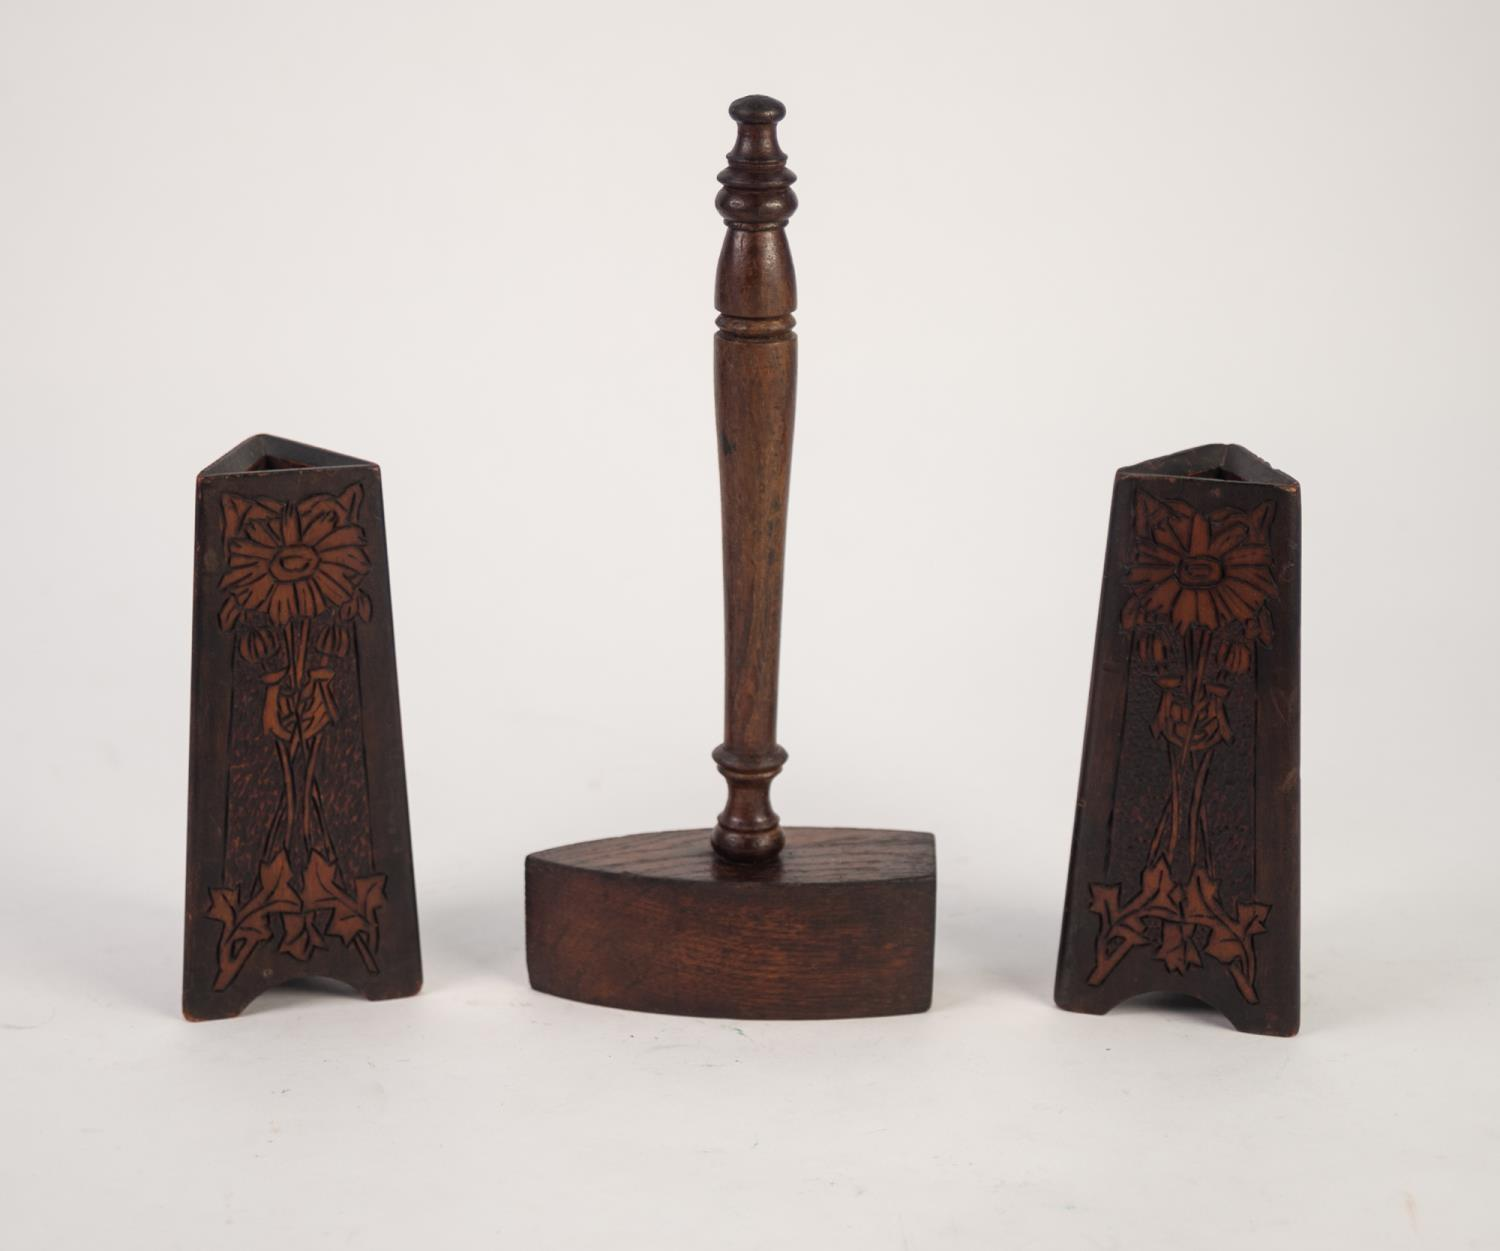 Lot 818 - LARGE HARDWOOD GAVEL with wedge shape top, a pair of poker work incised tapered triangular WOODEN